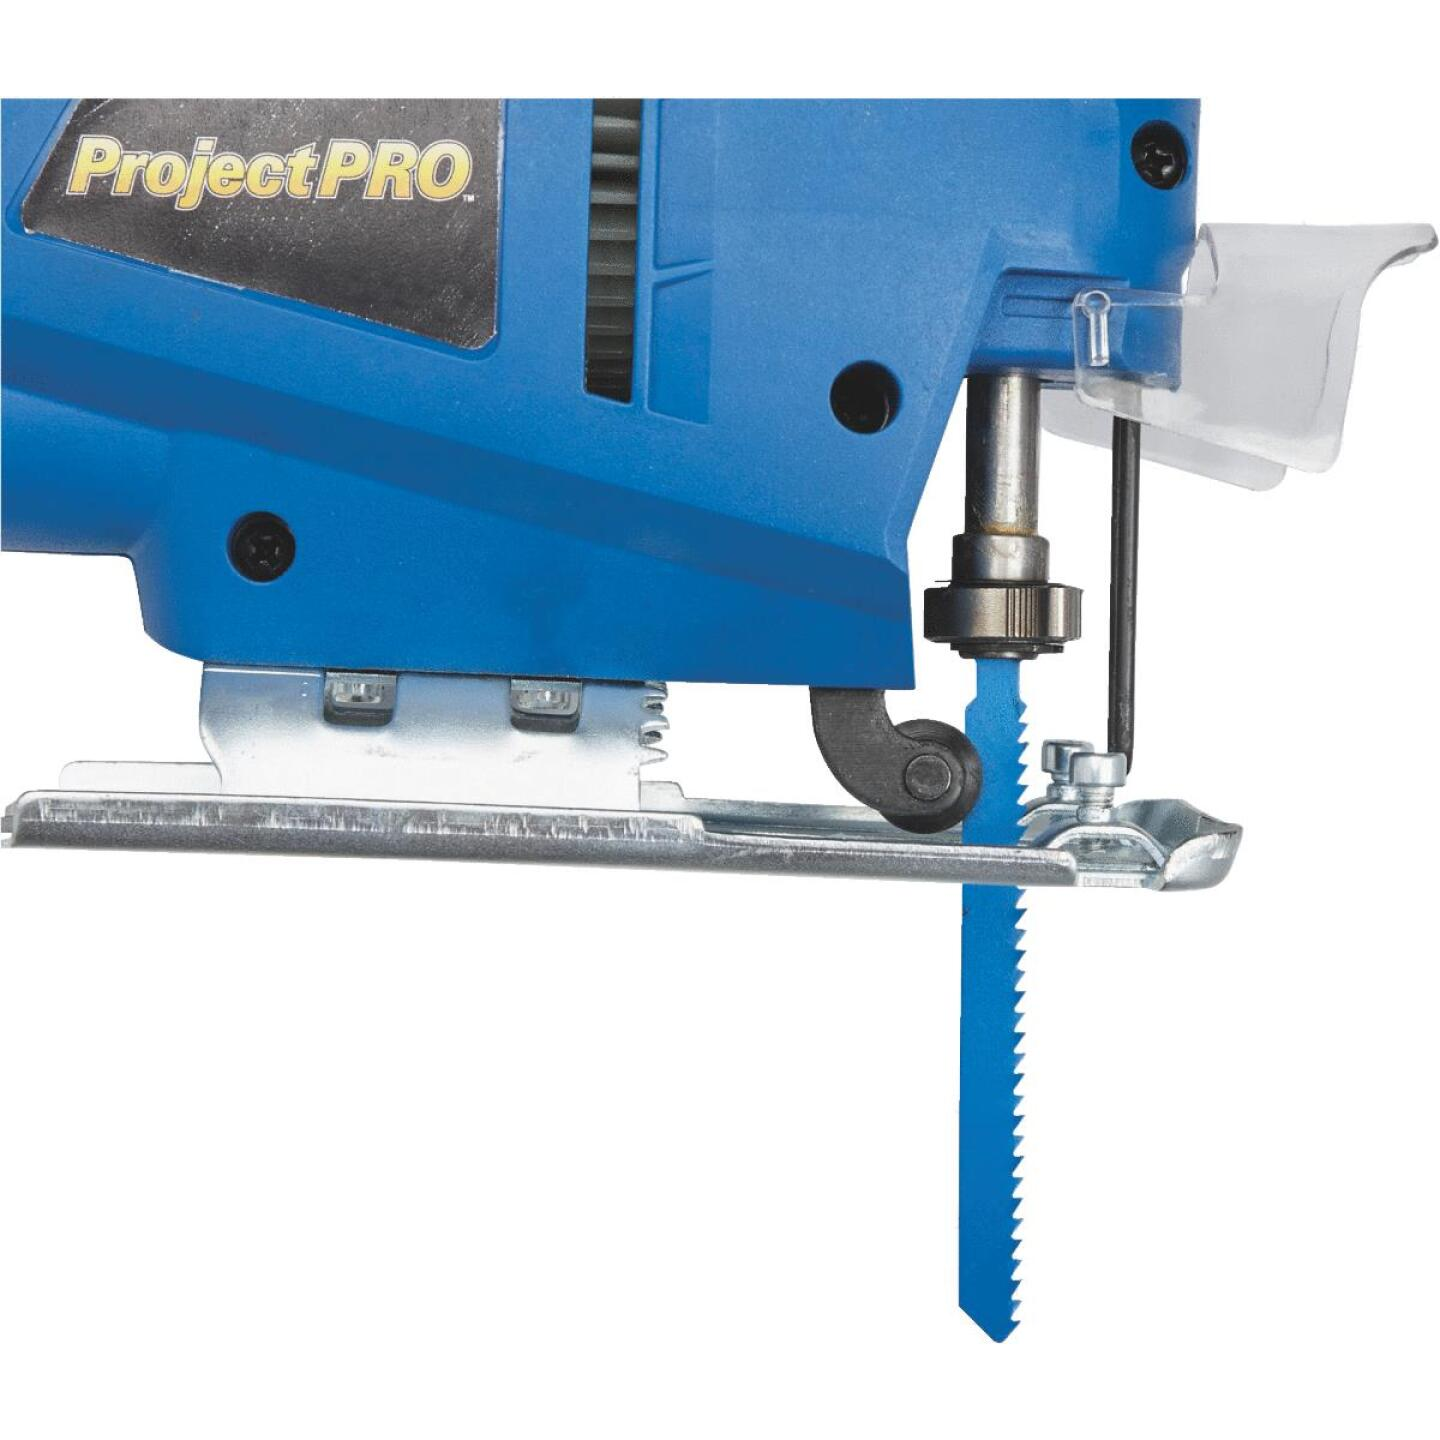 Project Pro 4.5A 0-3000 SPM Speed Jig Saw Image 9